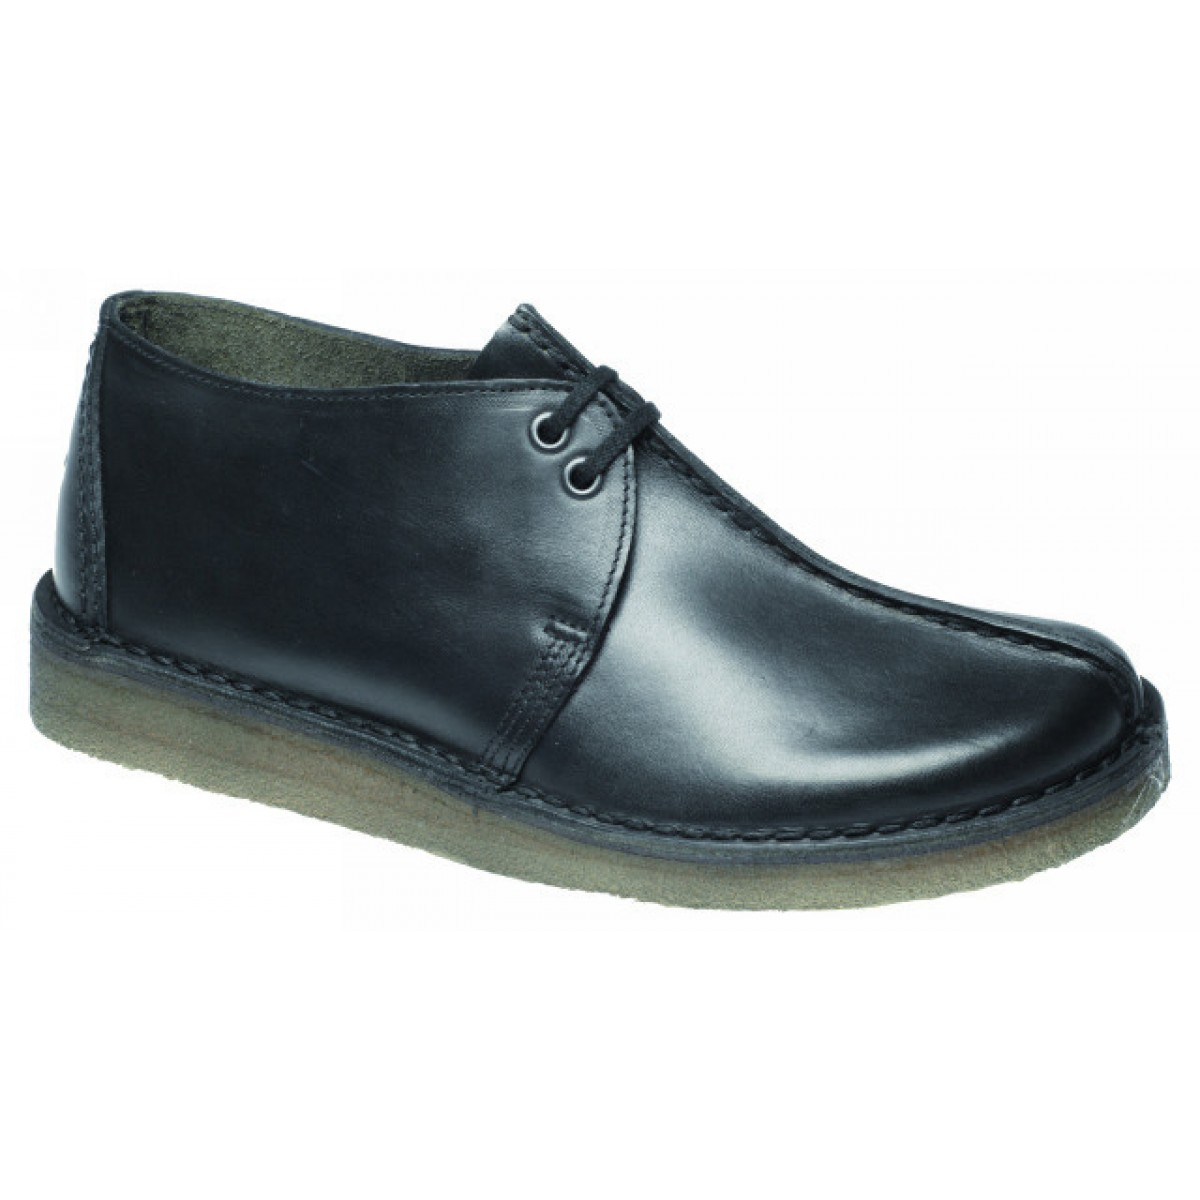 Is Clarks Shoes British